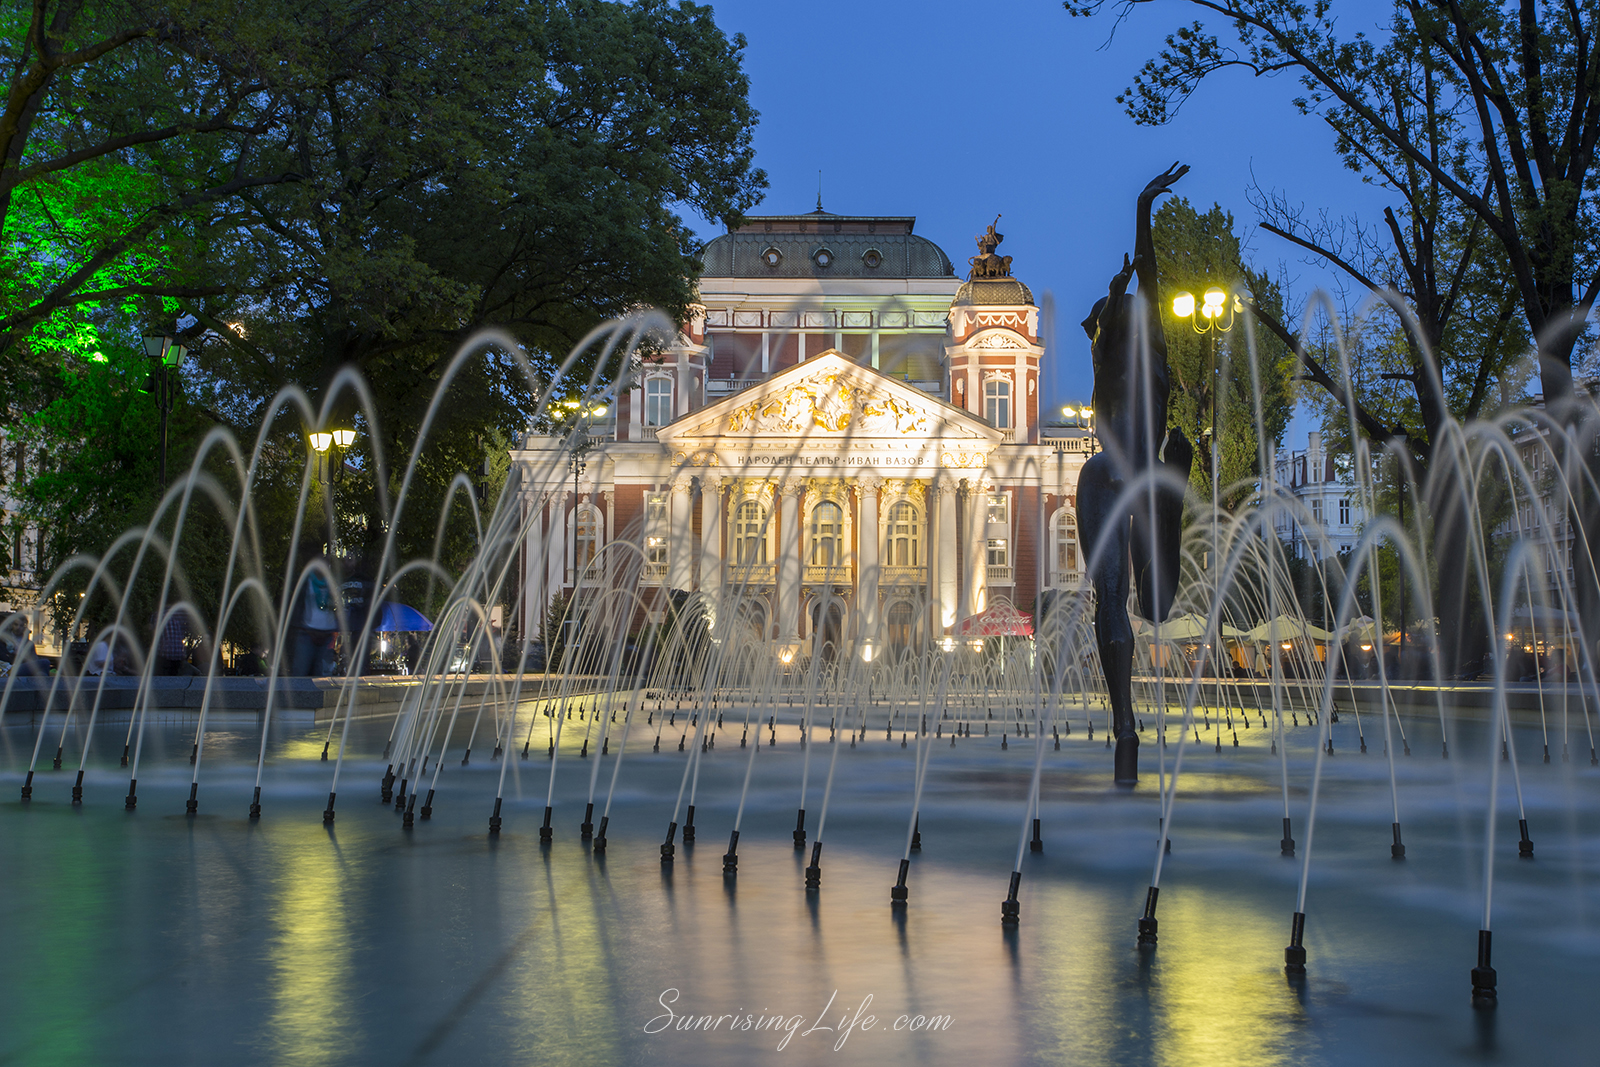 The fountains at the city garden, Sofia